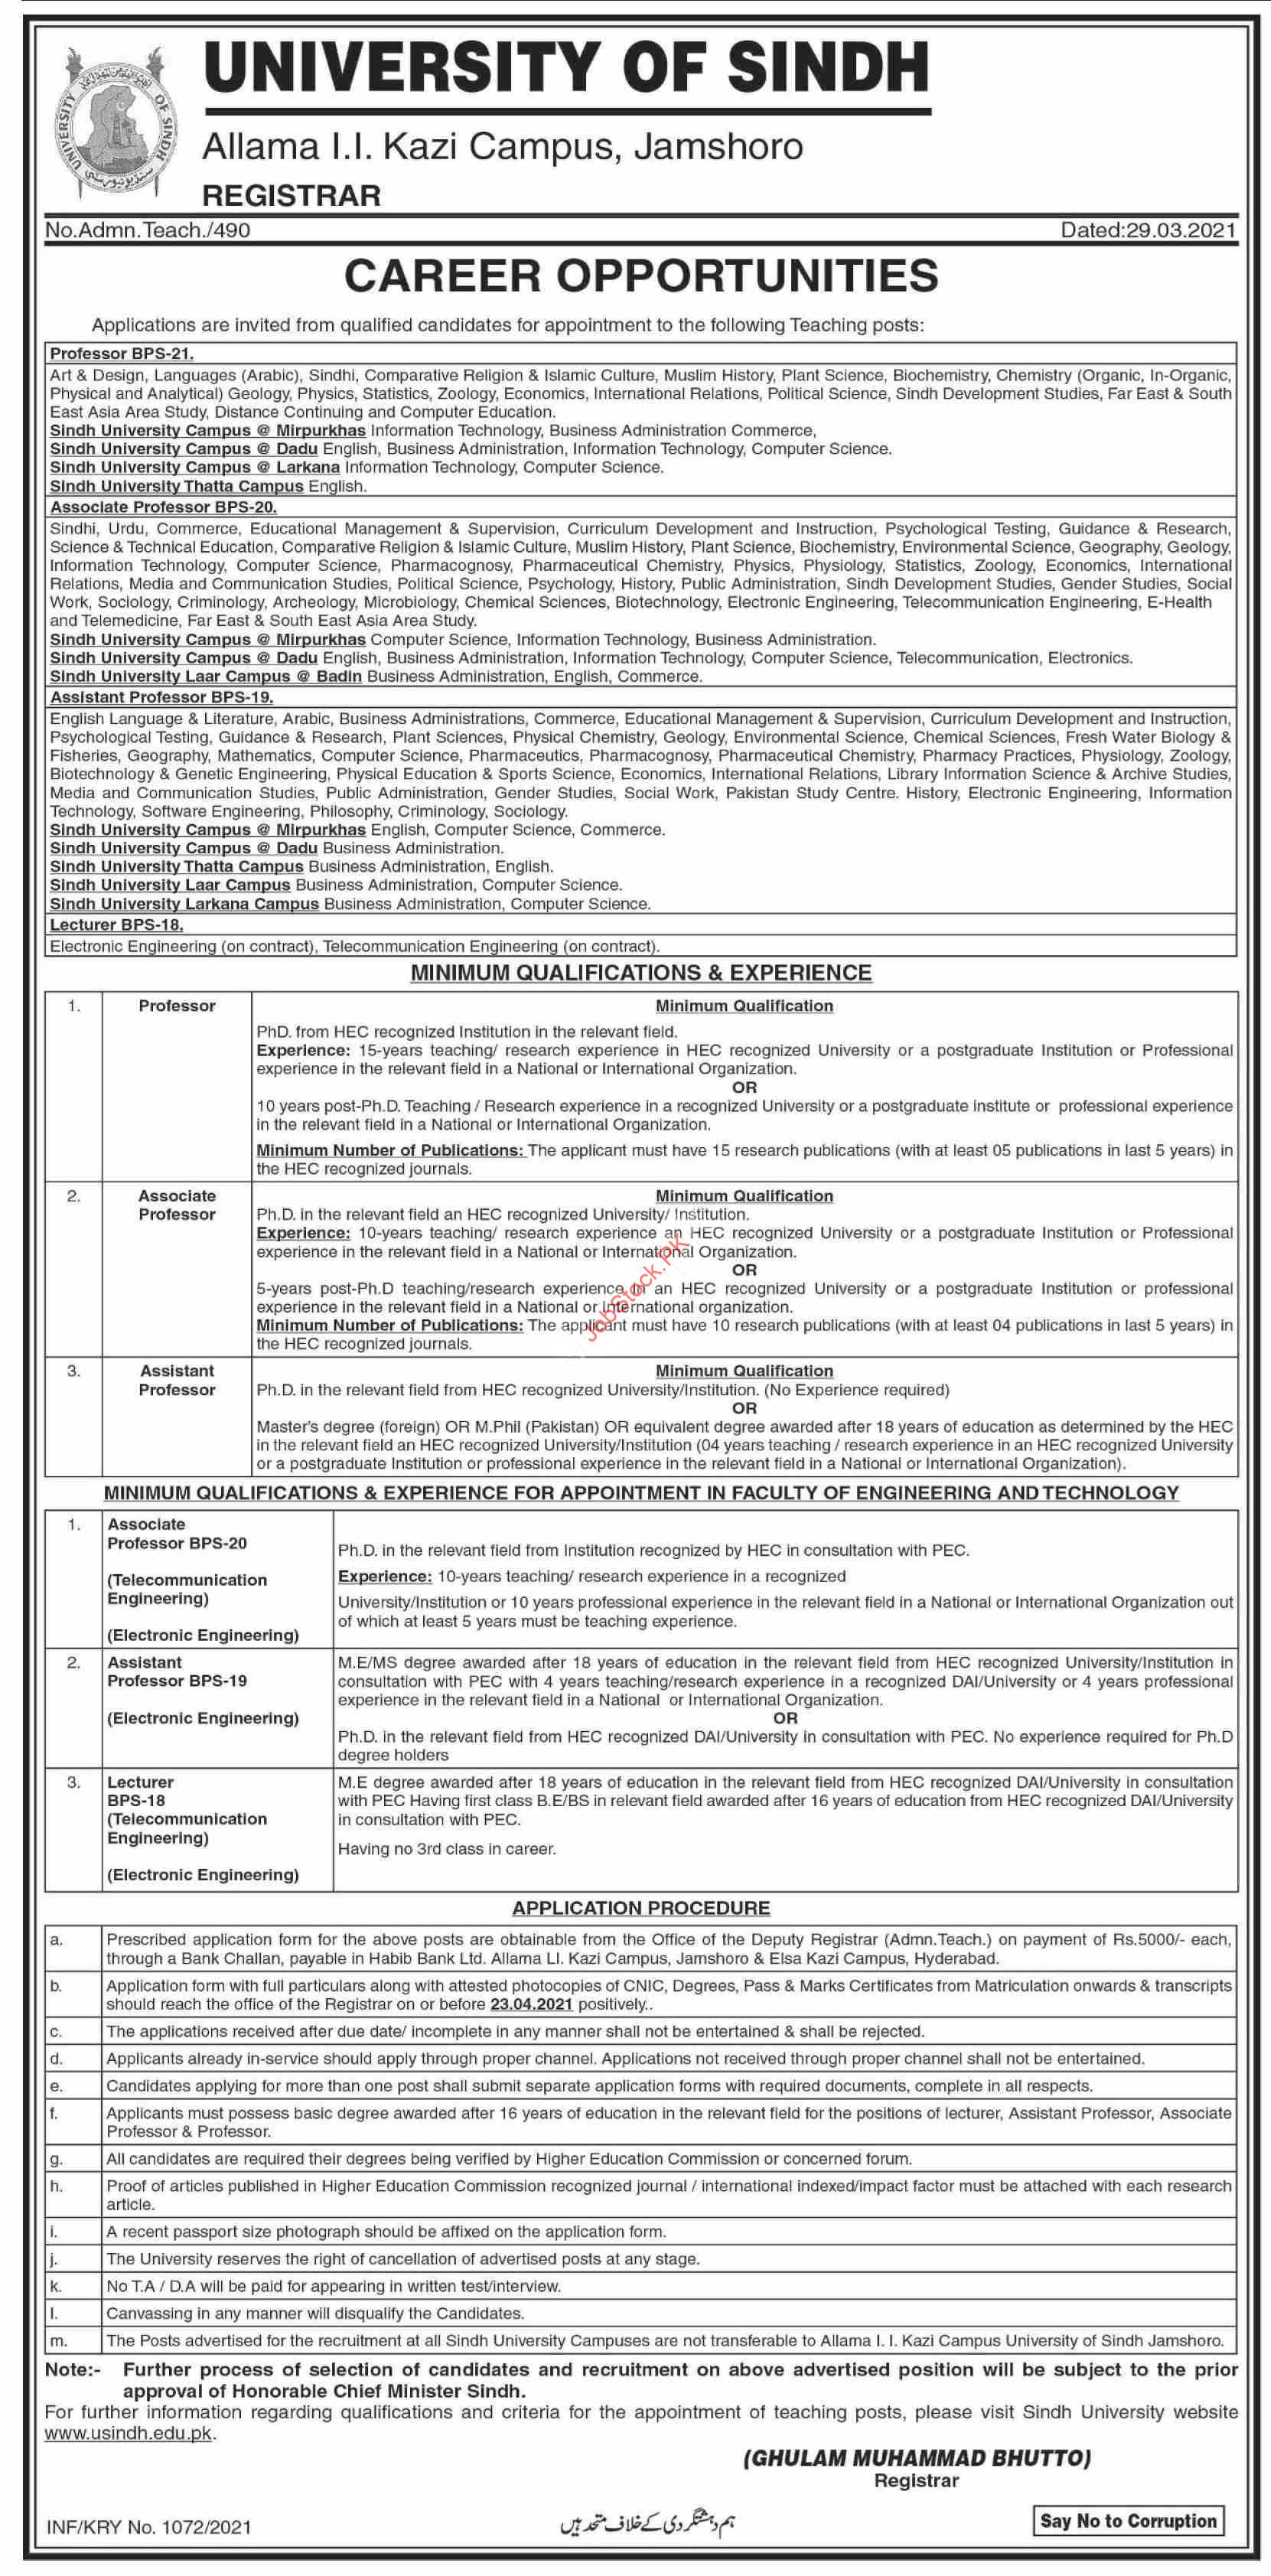 University Of Sindh Jamshoro Jobs 2021